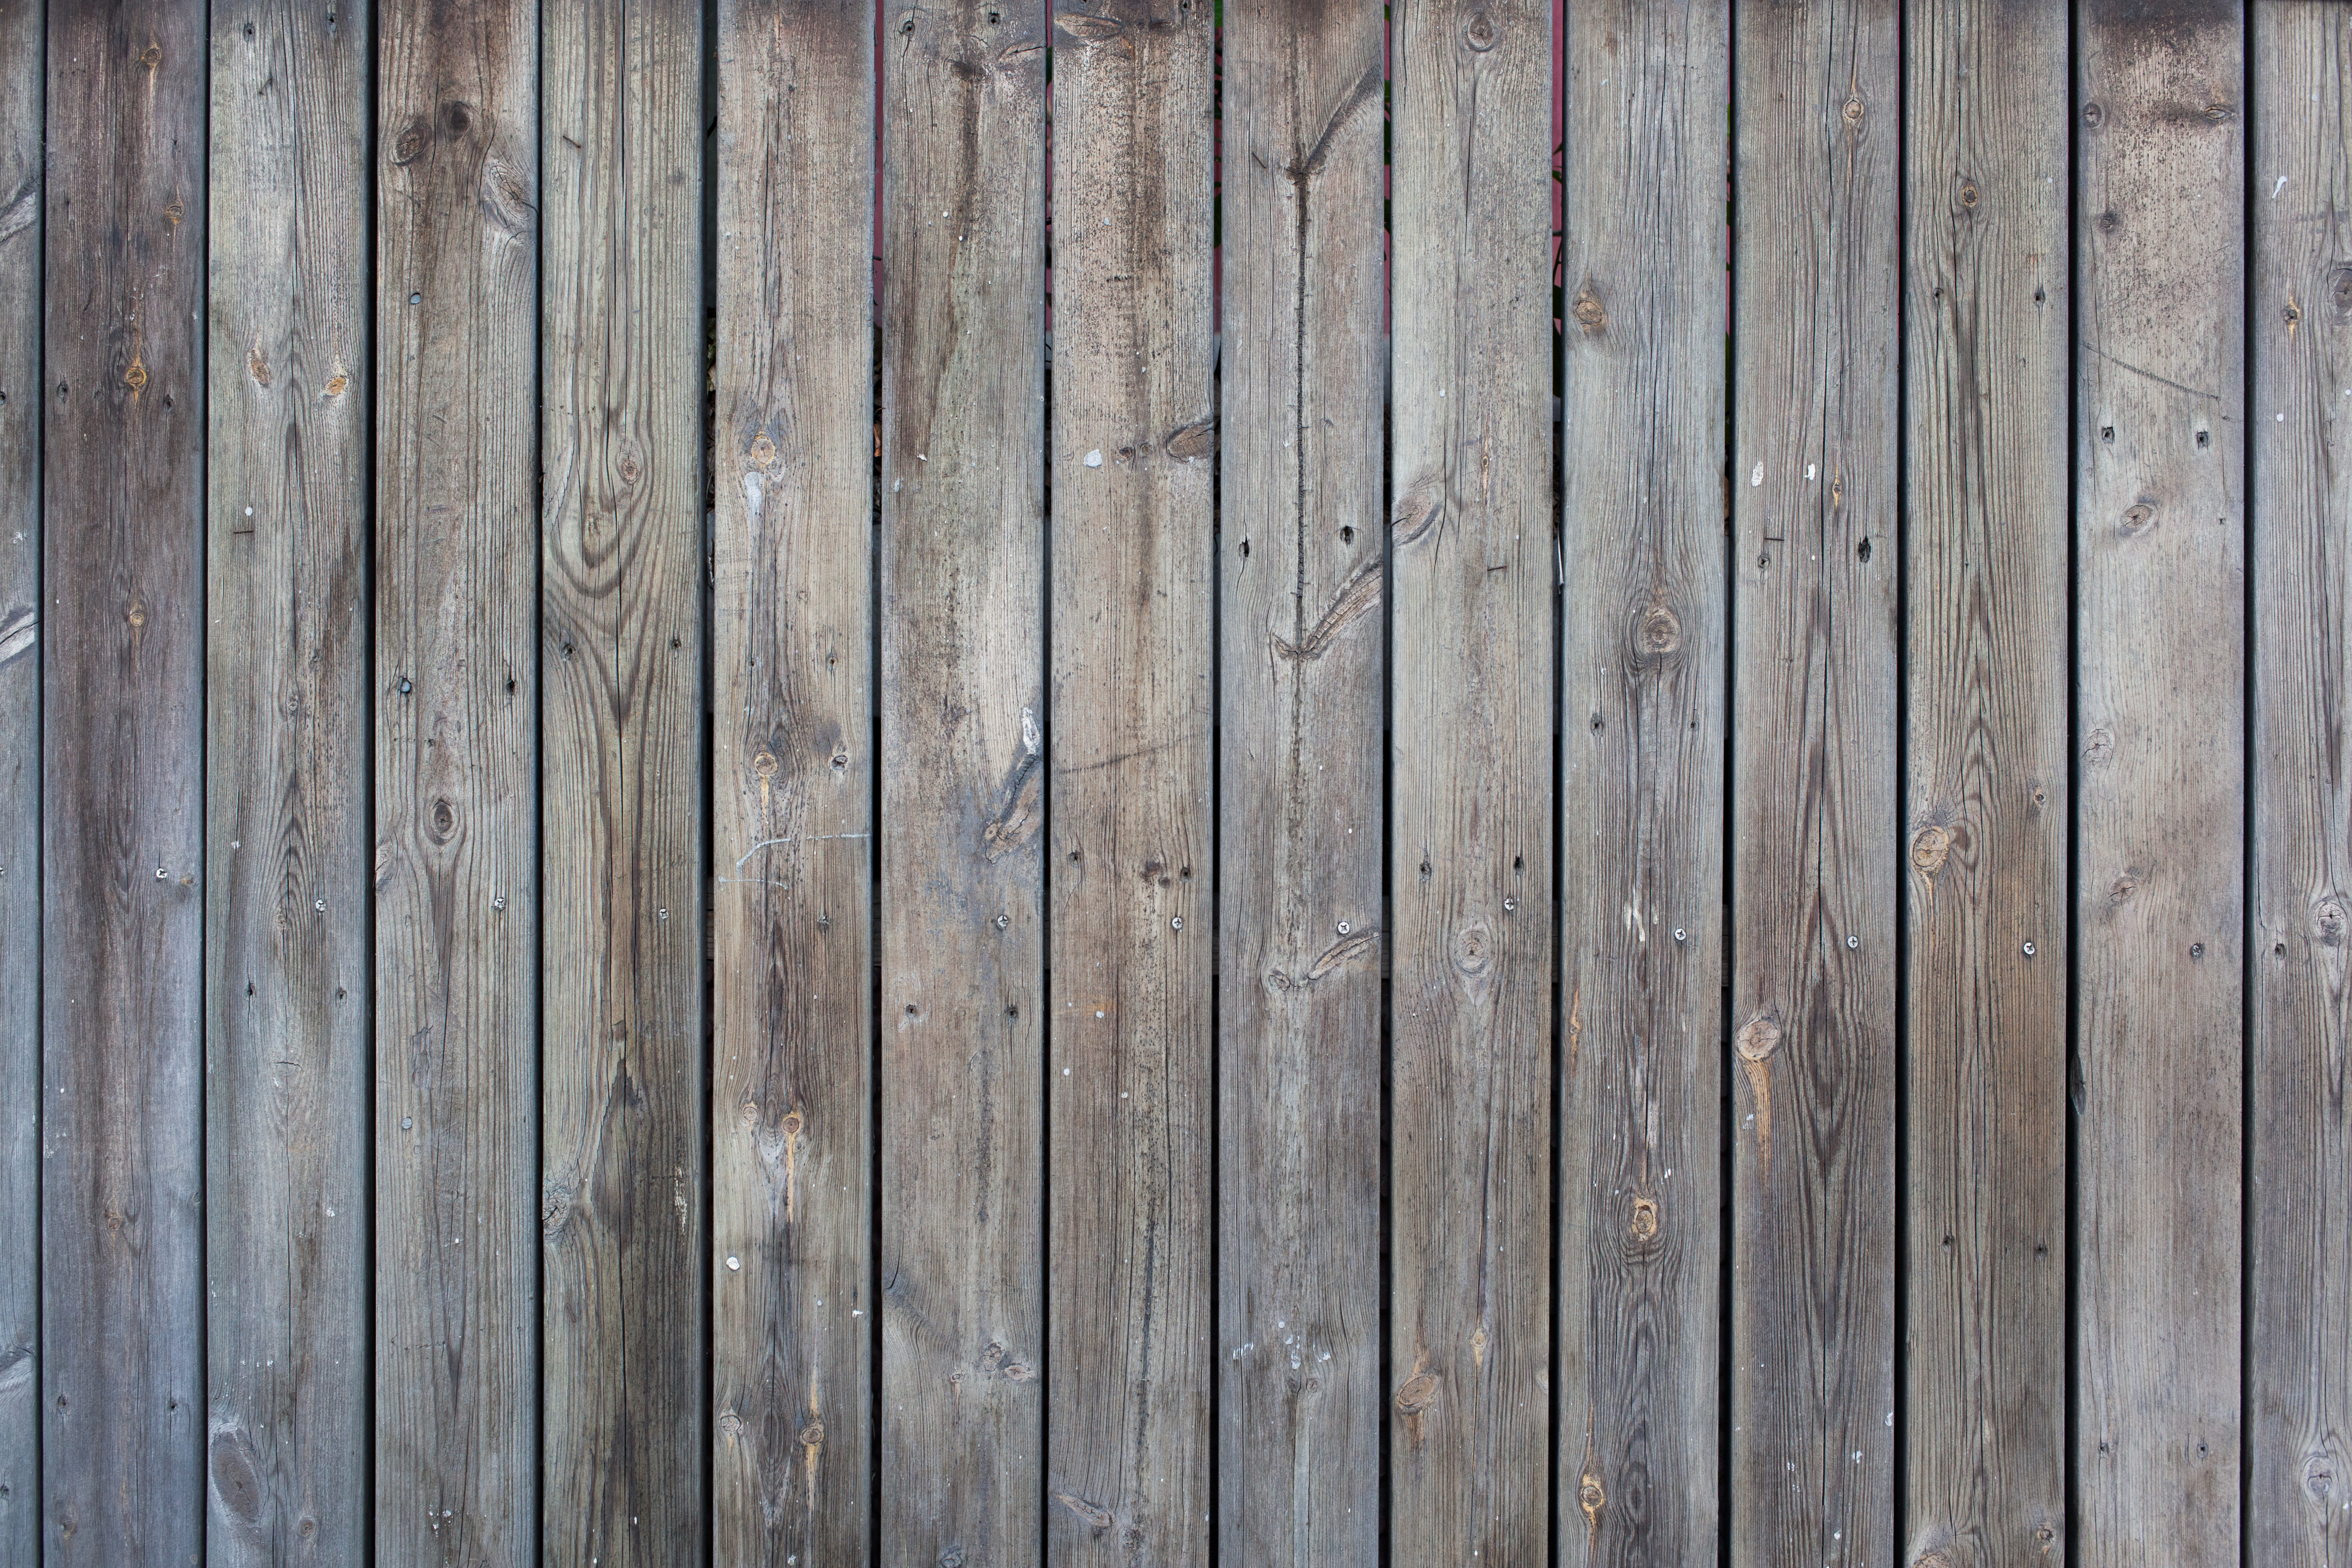 Free high resolution Wood textures | Wild Textures